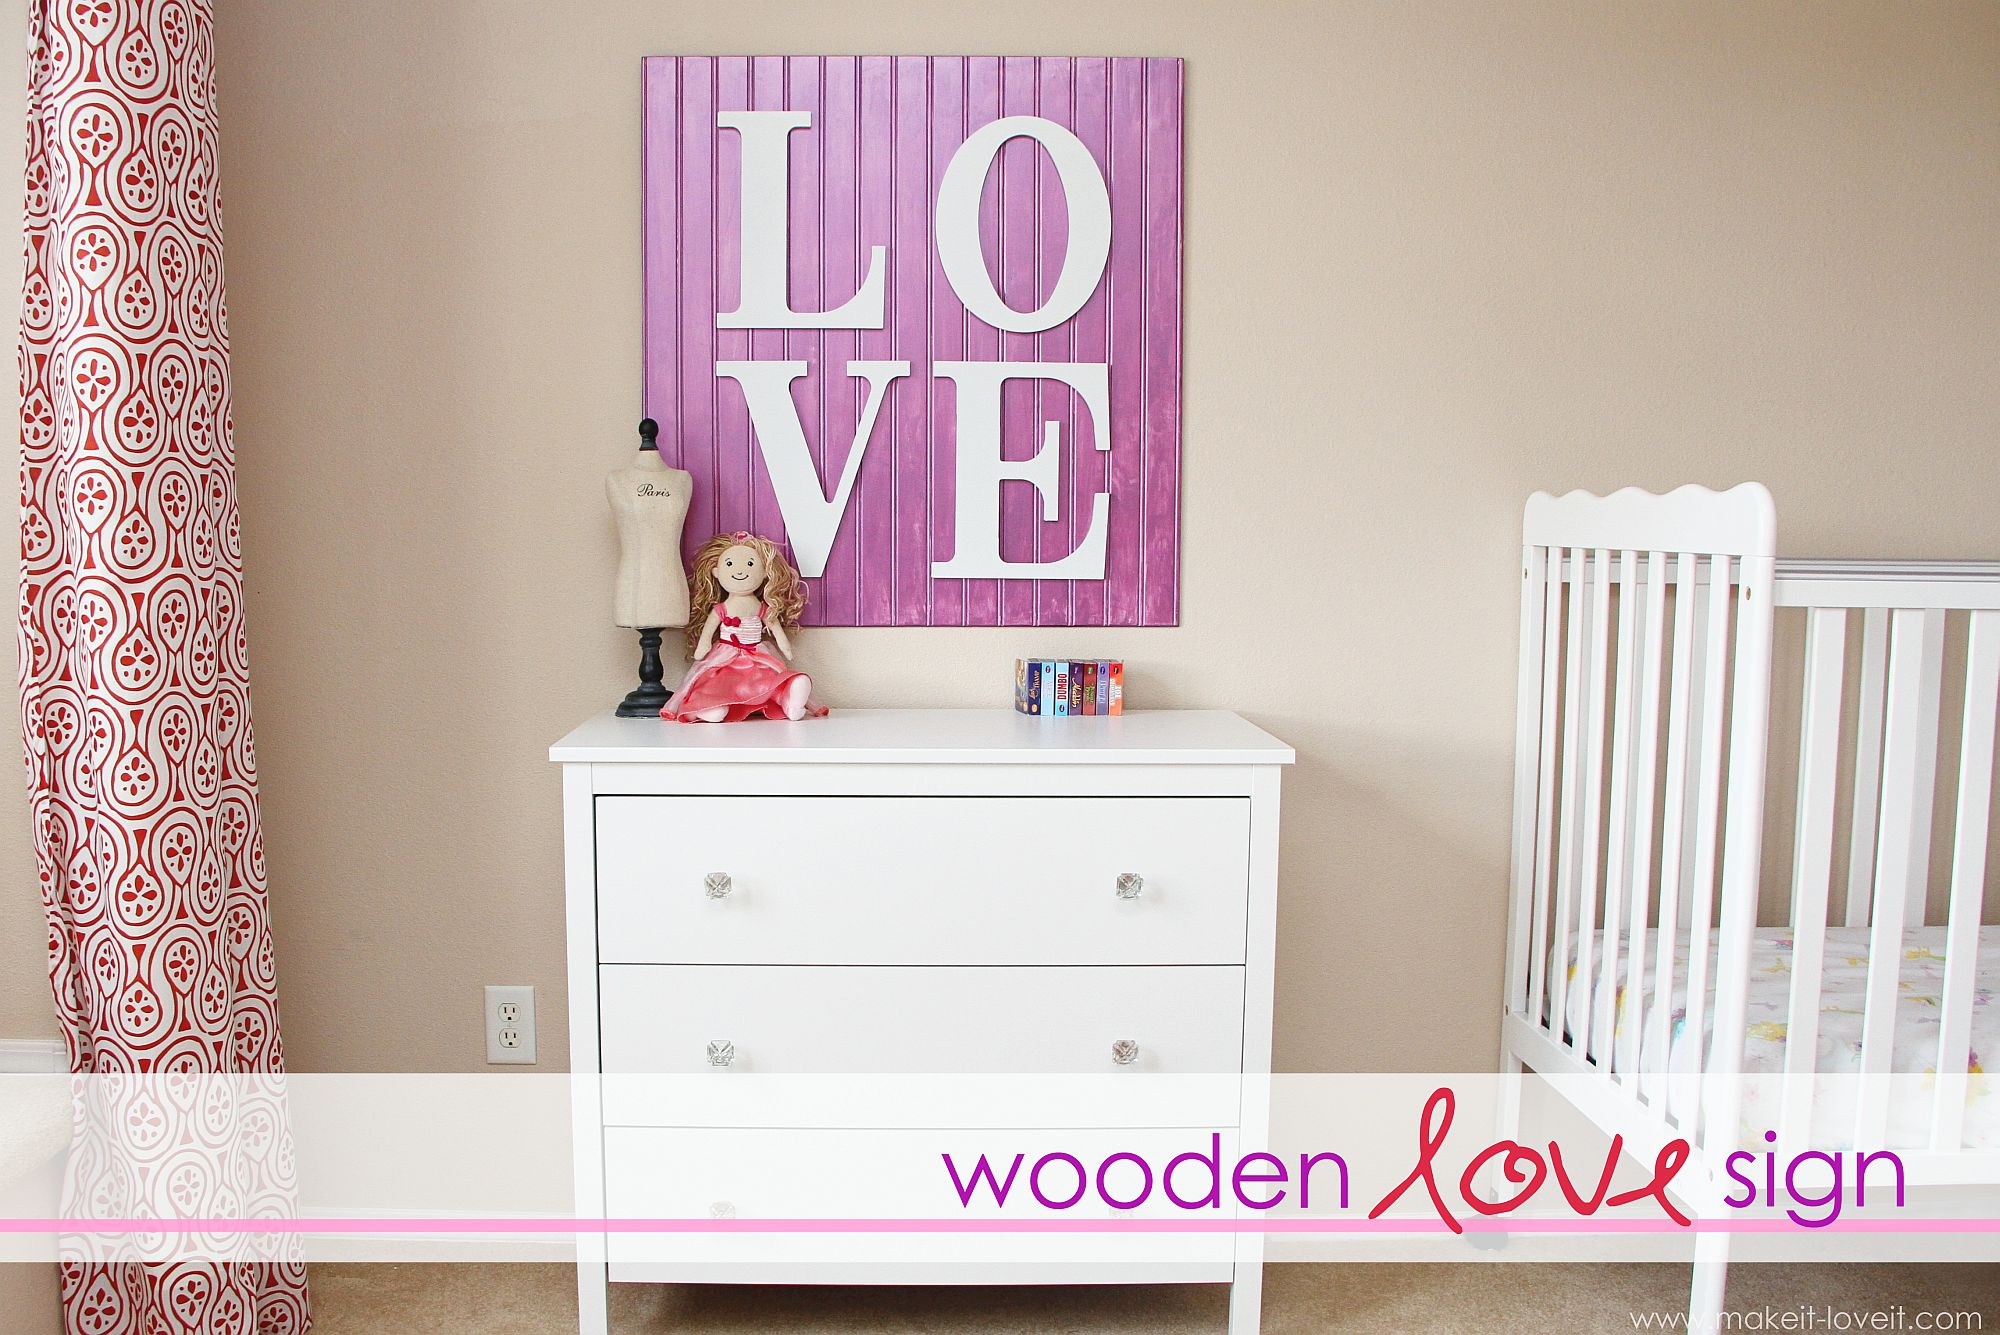 Striking and classy wooden love sign in purple